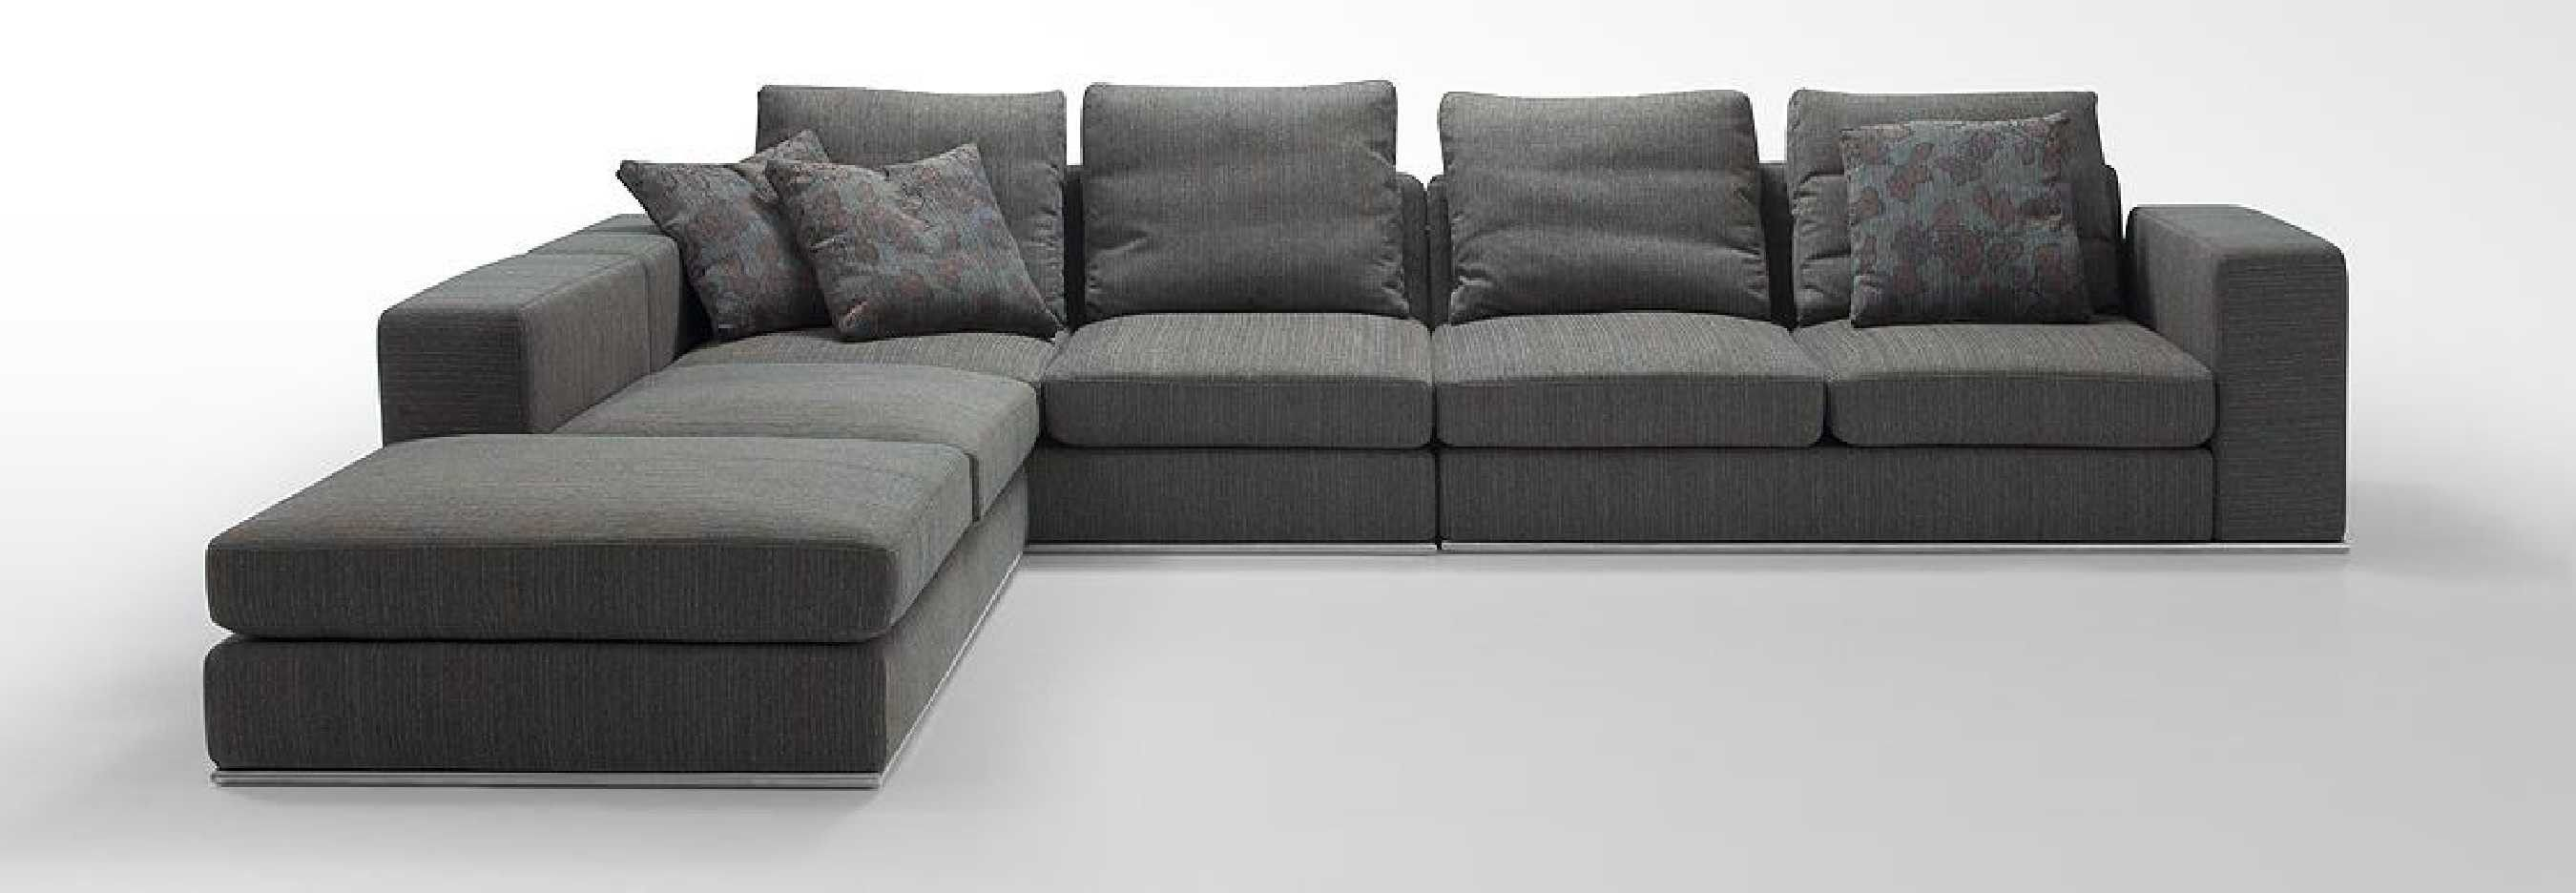 Appealing L Shaped Sofa e With Grey Modern fy Fabric L